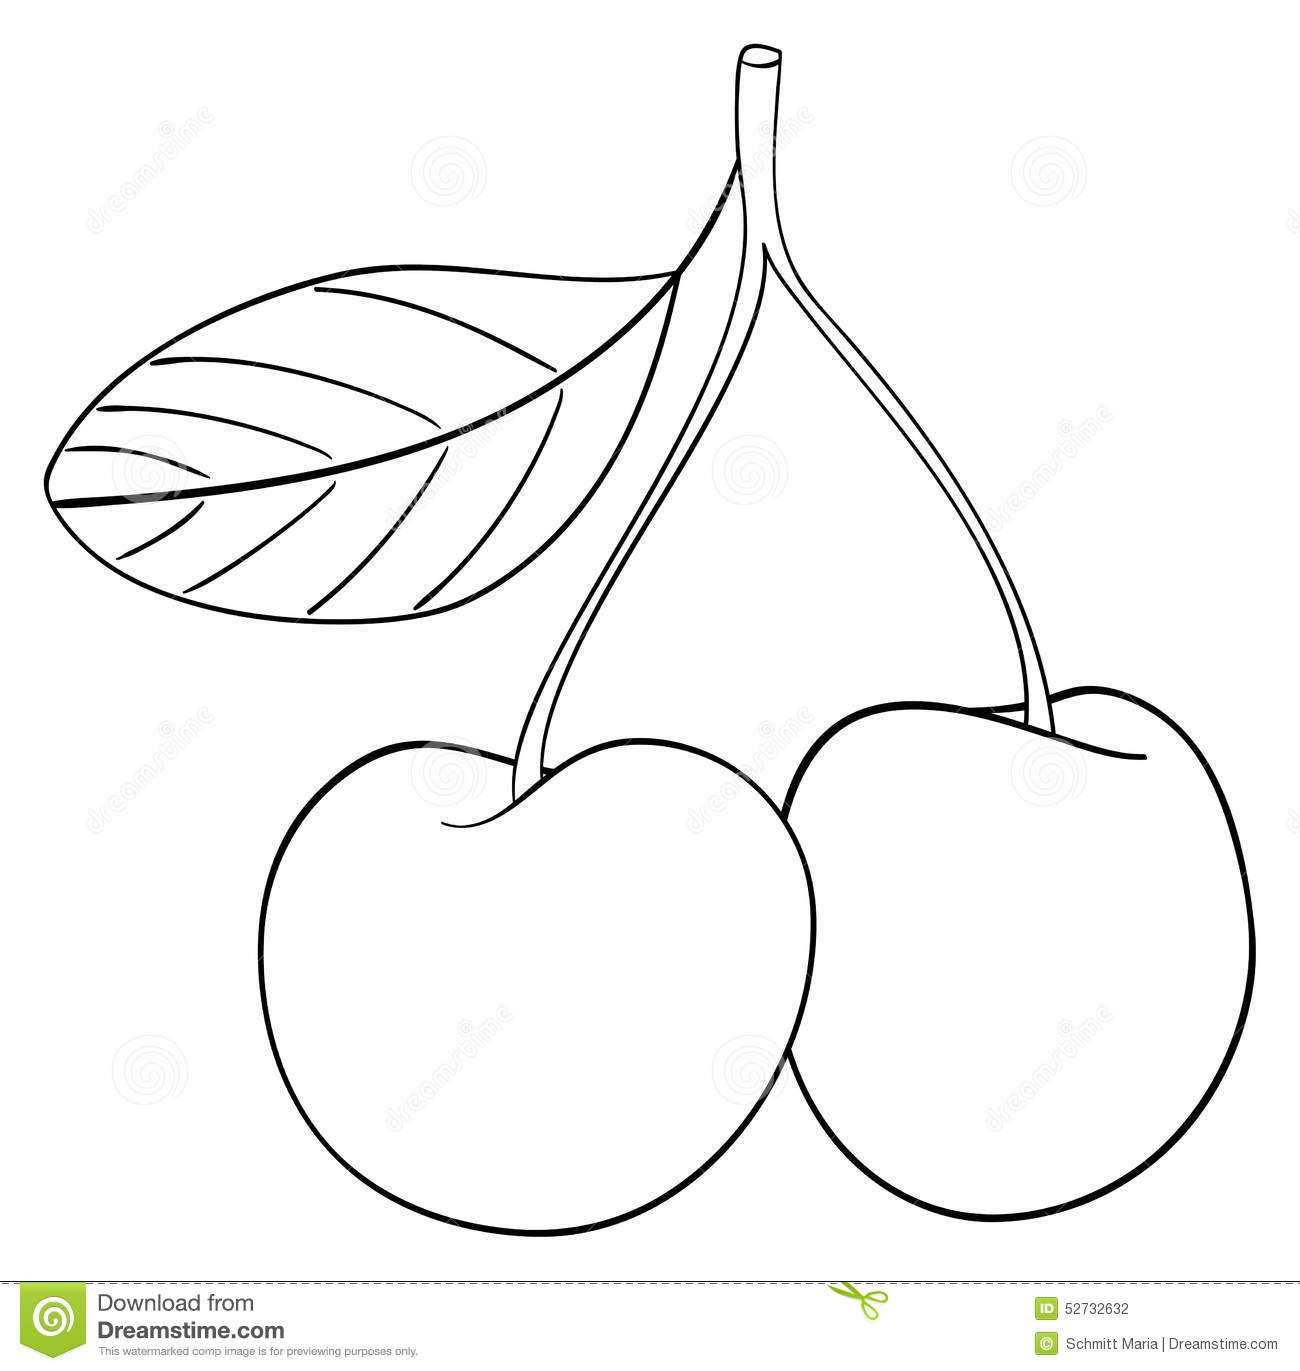 Stock Foto Pompoen Zwart Silhouet Image34516730 furthermore Stock Illustration Delightful Garden Two Cherries Connected Together Stem Leaf White Background Collection Image52732632 furthermore Bible Key Point Coloring Page Sneaky Snake further Stock Images Vector Monochrome Illustration Apple Logo Many Similarities To Author S Profile Image33356174 likewise Draw A Bat. on eating fruit